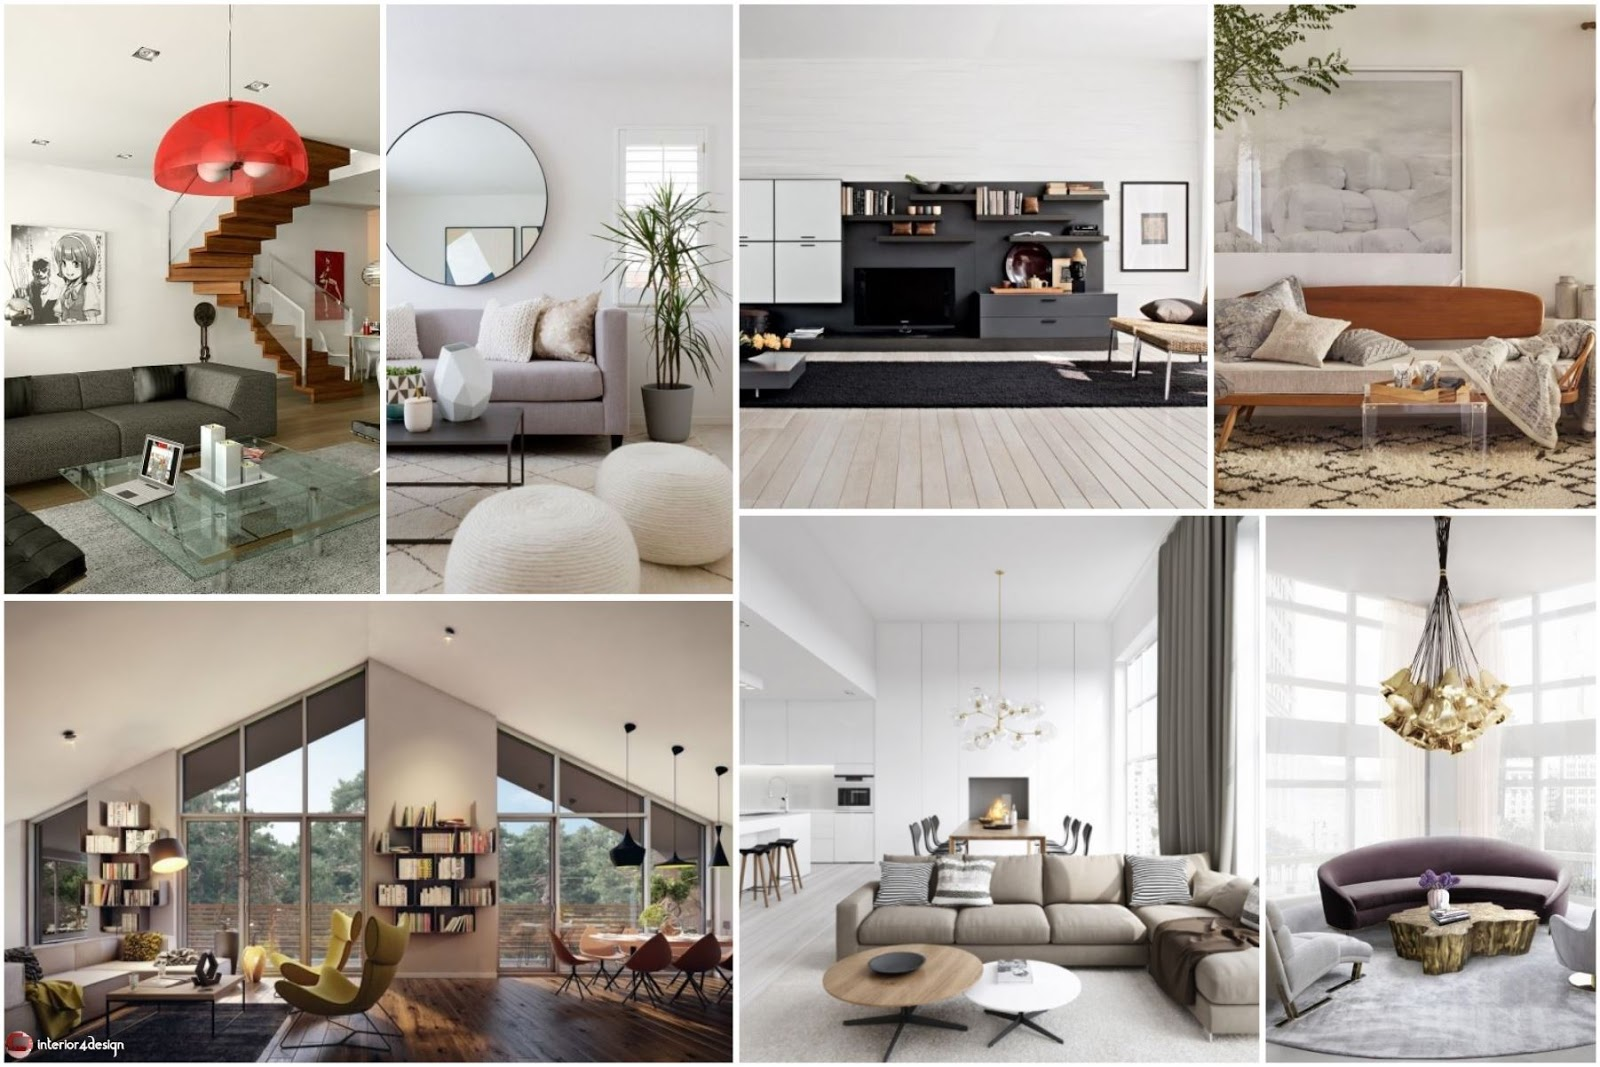 Ideas To Renovate The Living Room Decor .. In 20 Modern Ways